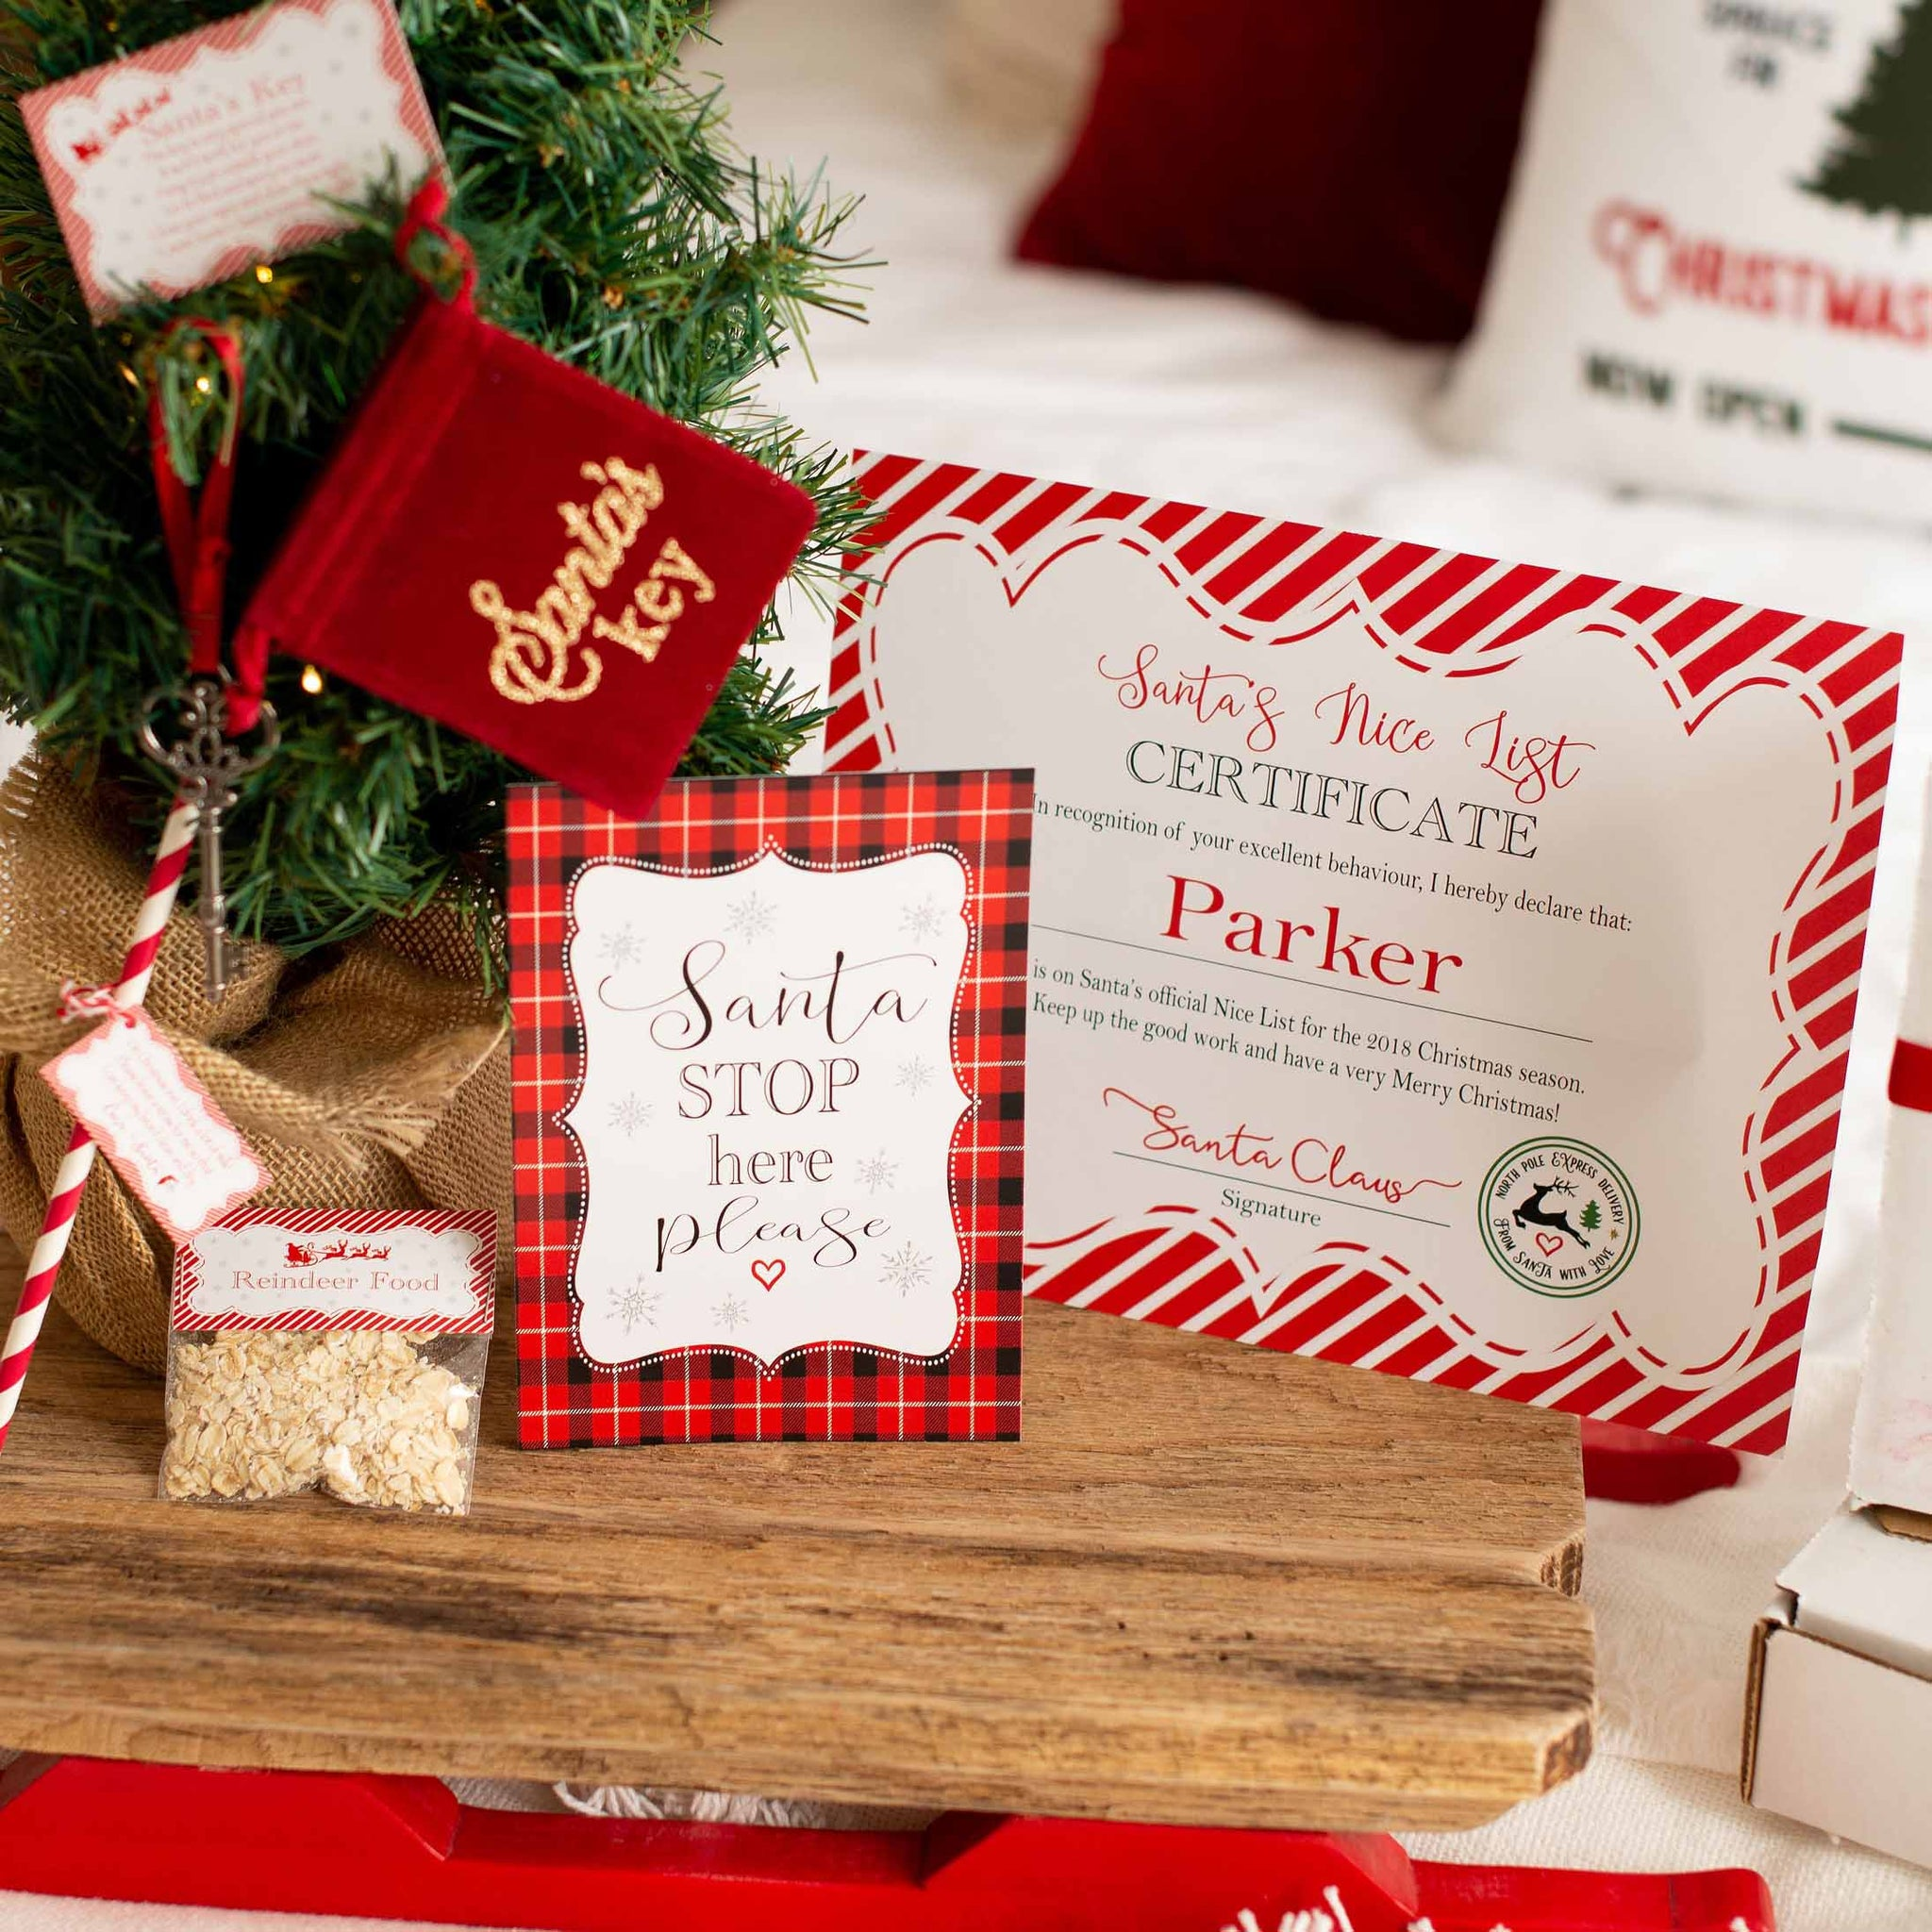 Christmas Eve Box With Nice List Certificate And Santa S Key Sugar Crush Co